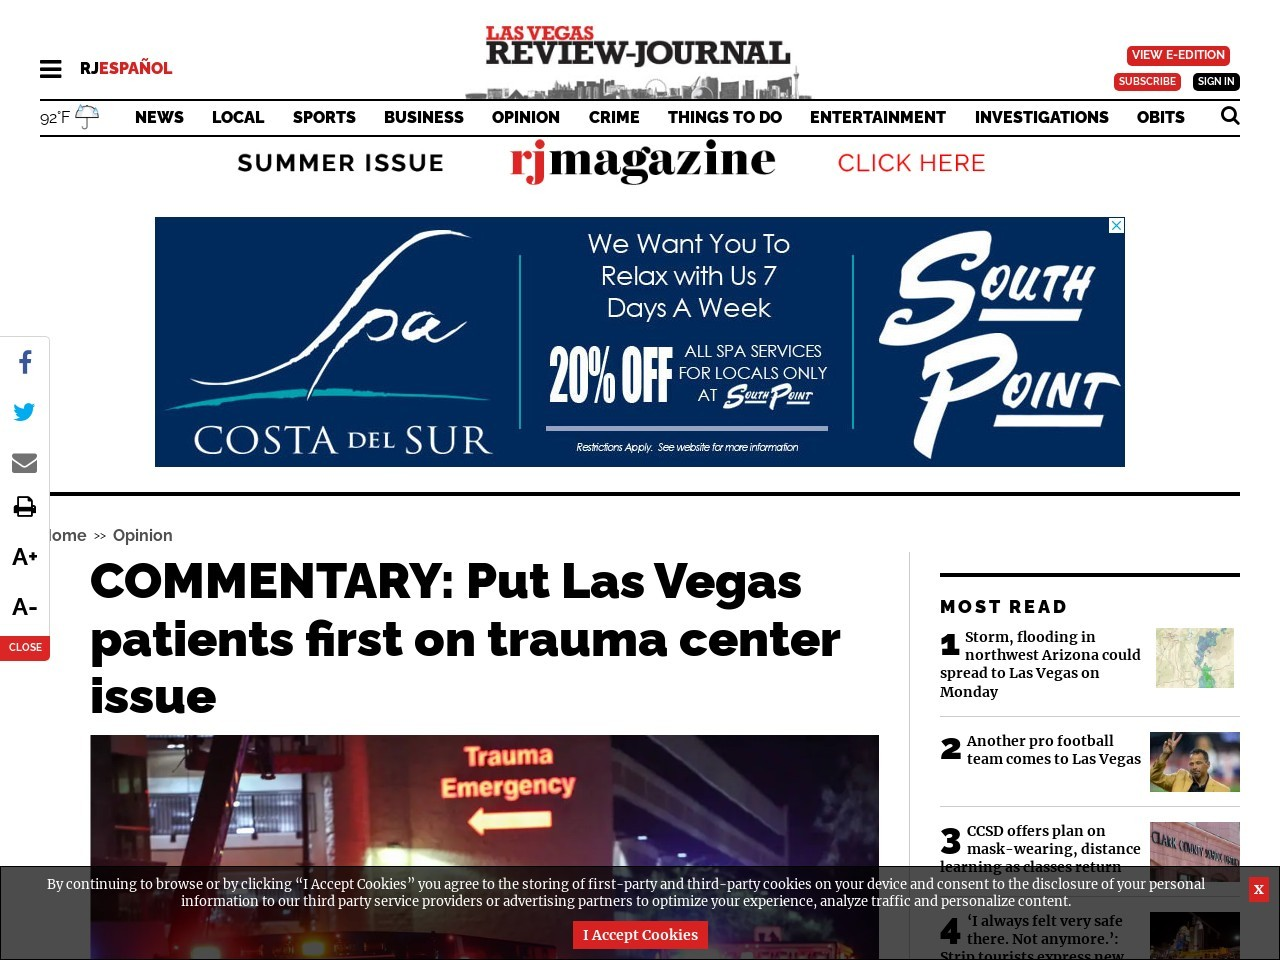 COMMENTARY: Put Las Vegas patients first on trauma center issue